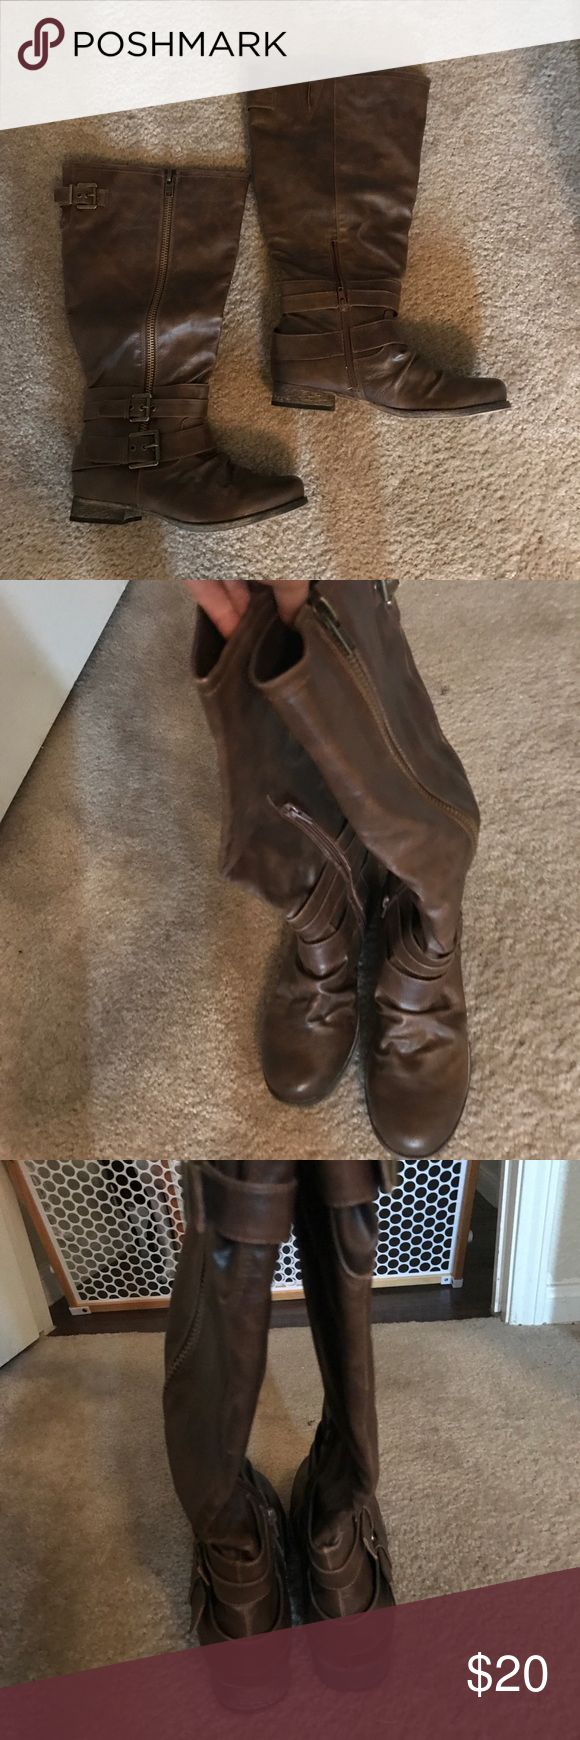 Carlos Santana tall boots size 8 Adorable tall brown leather Carlos boots size 8. Very minor scuffing and overall in good condition. Carlos Santana Shoes Heeled Boots